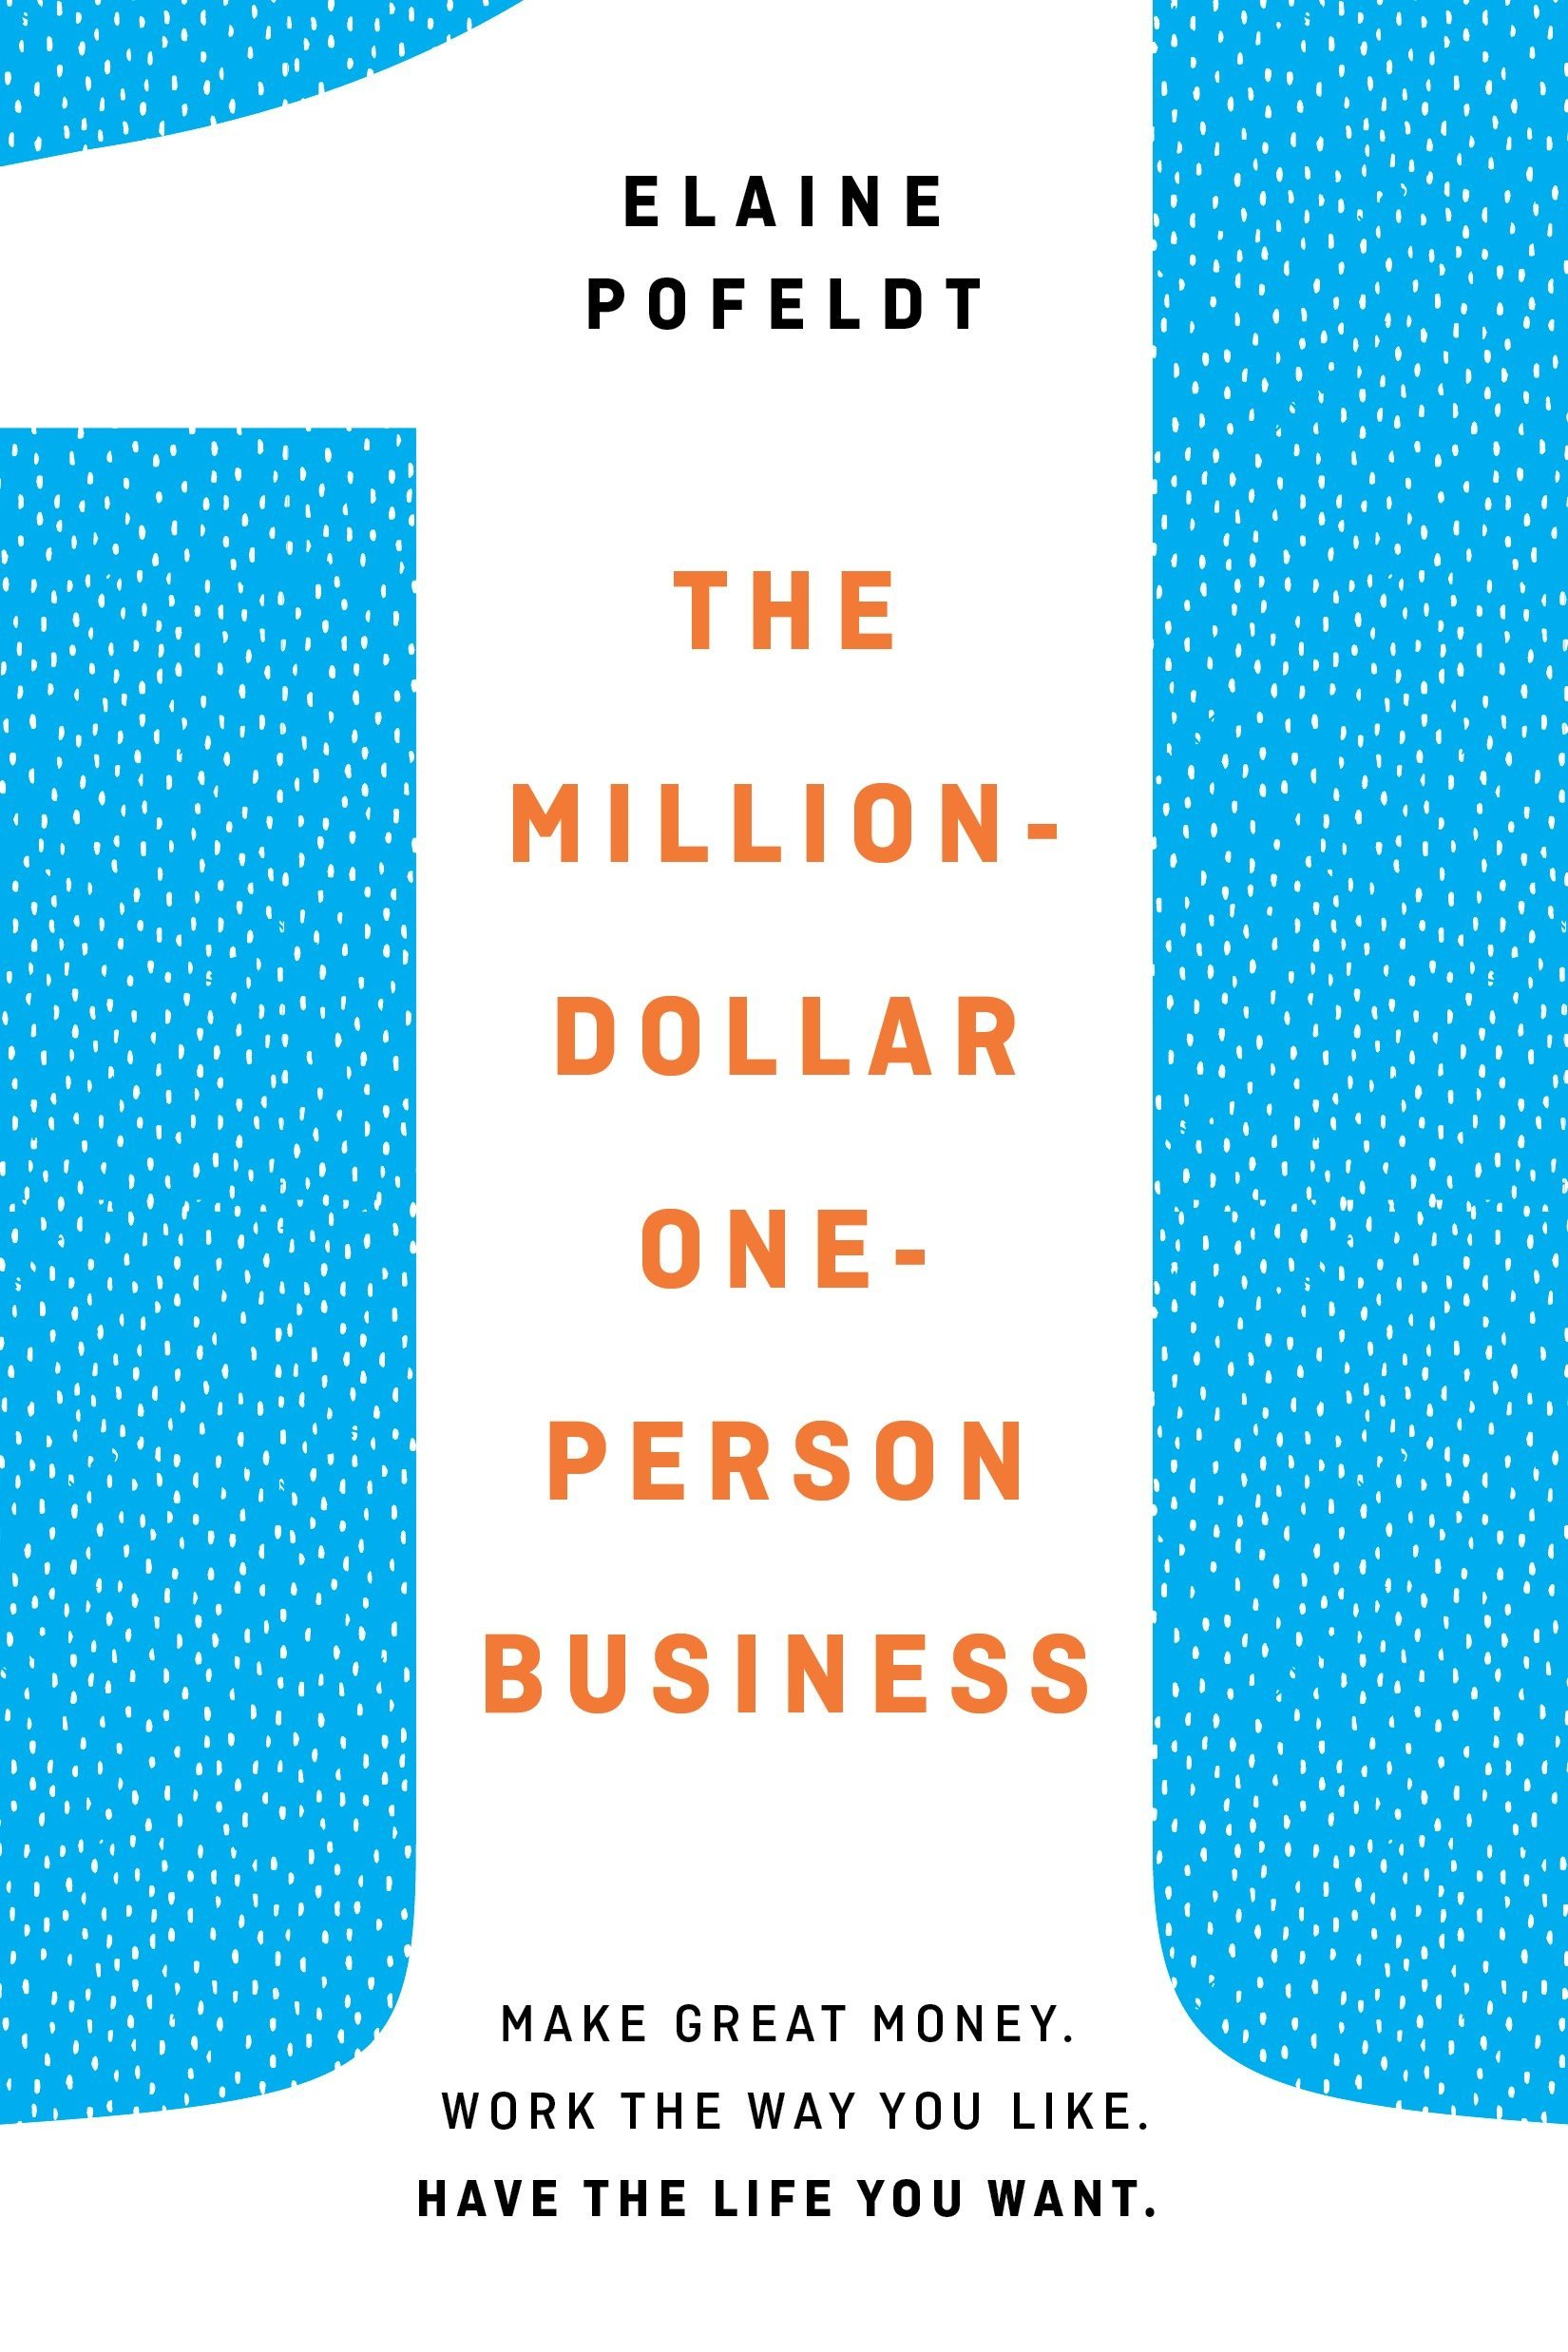 amazoncom the million dollar one person business make great money work the way you like have the life you want 9780399578960 elaine pofeldt books